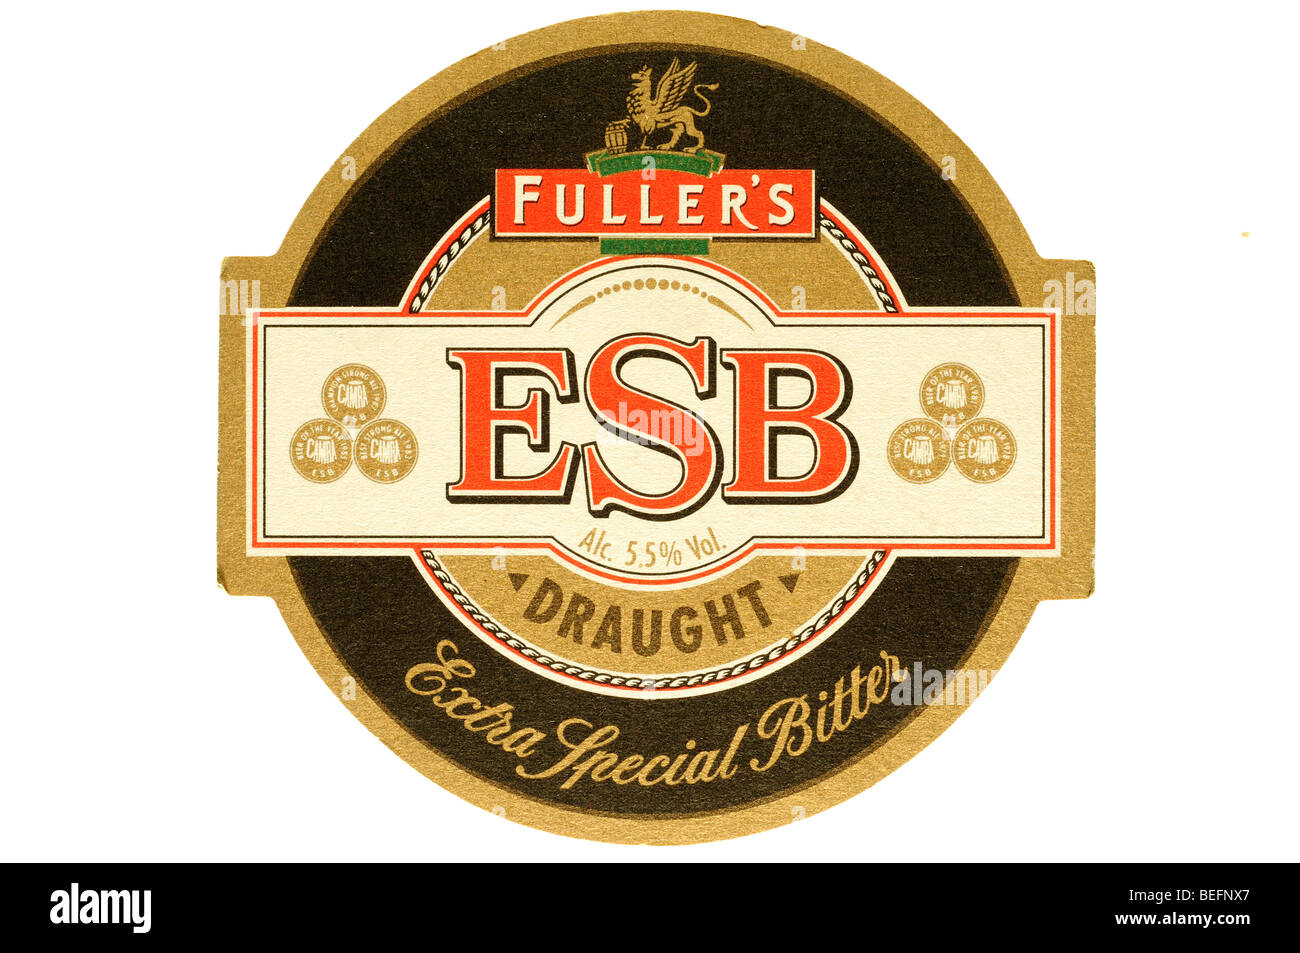 fullers esb draught extra special bitter - Stock Image